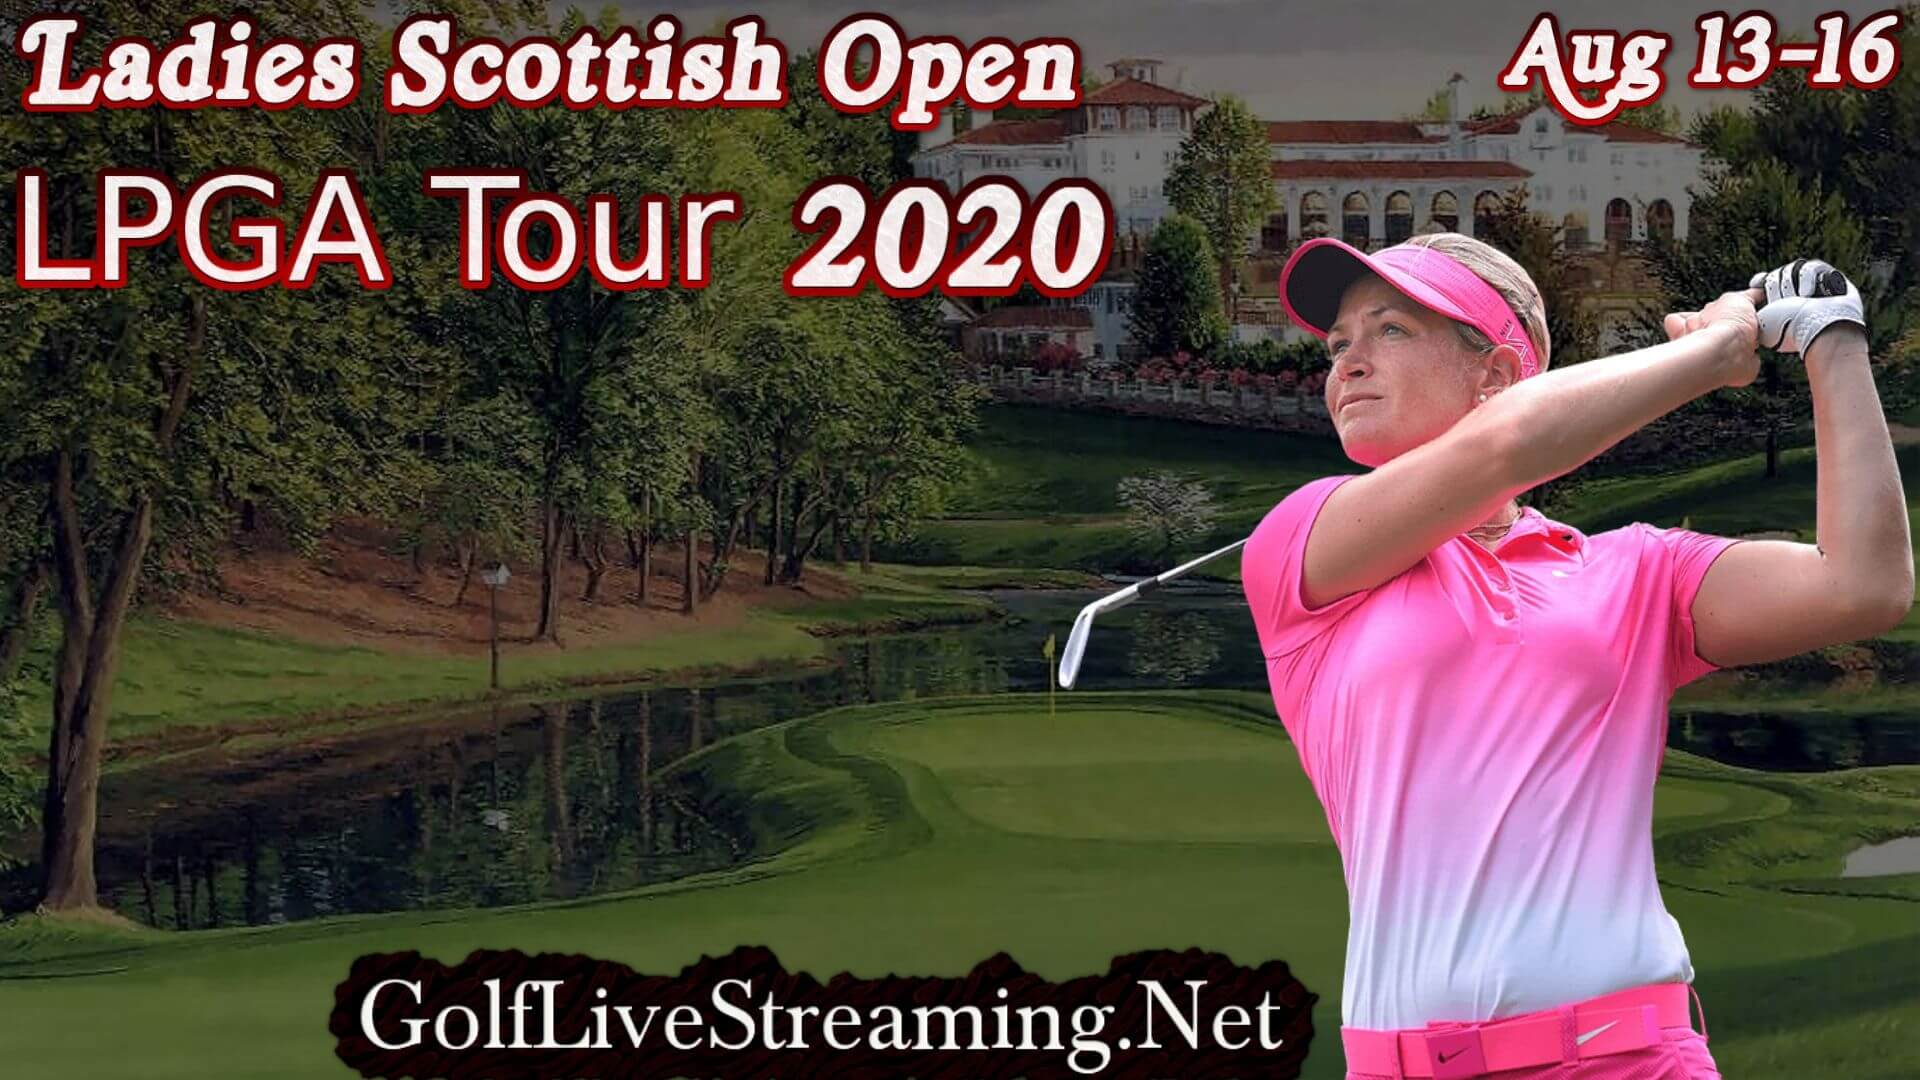 Ladies Scottish Open 2018 Live Streaming